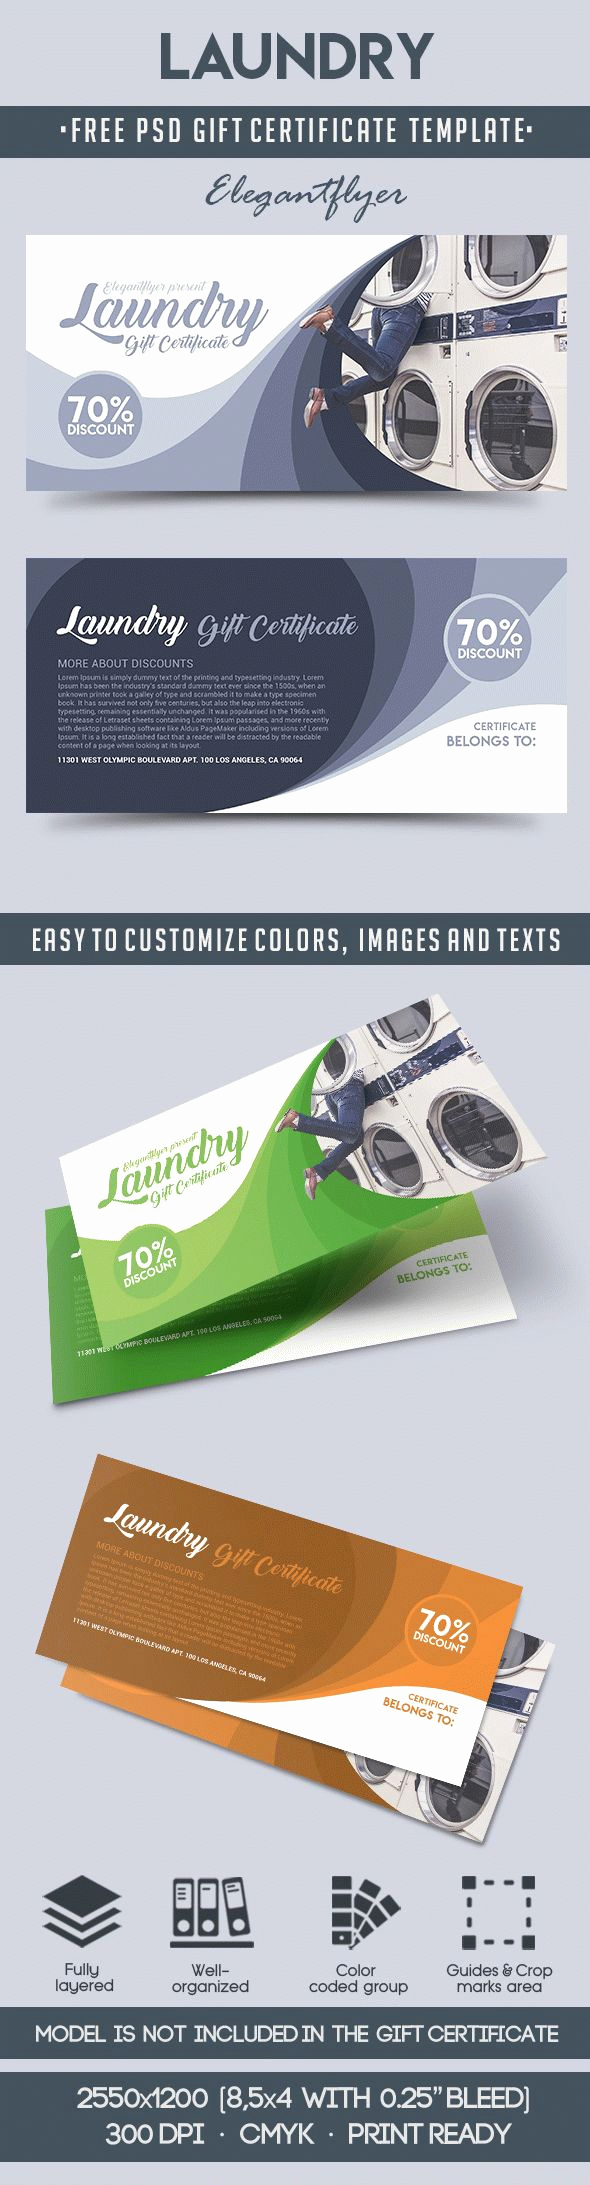 Gift Certificate Template Psd New Laundry – Free Gift Certificate Psd Template – by Elegantflyer